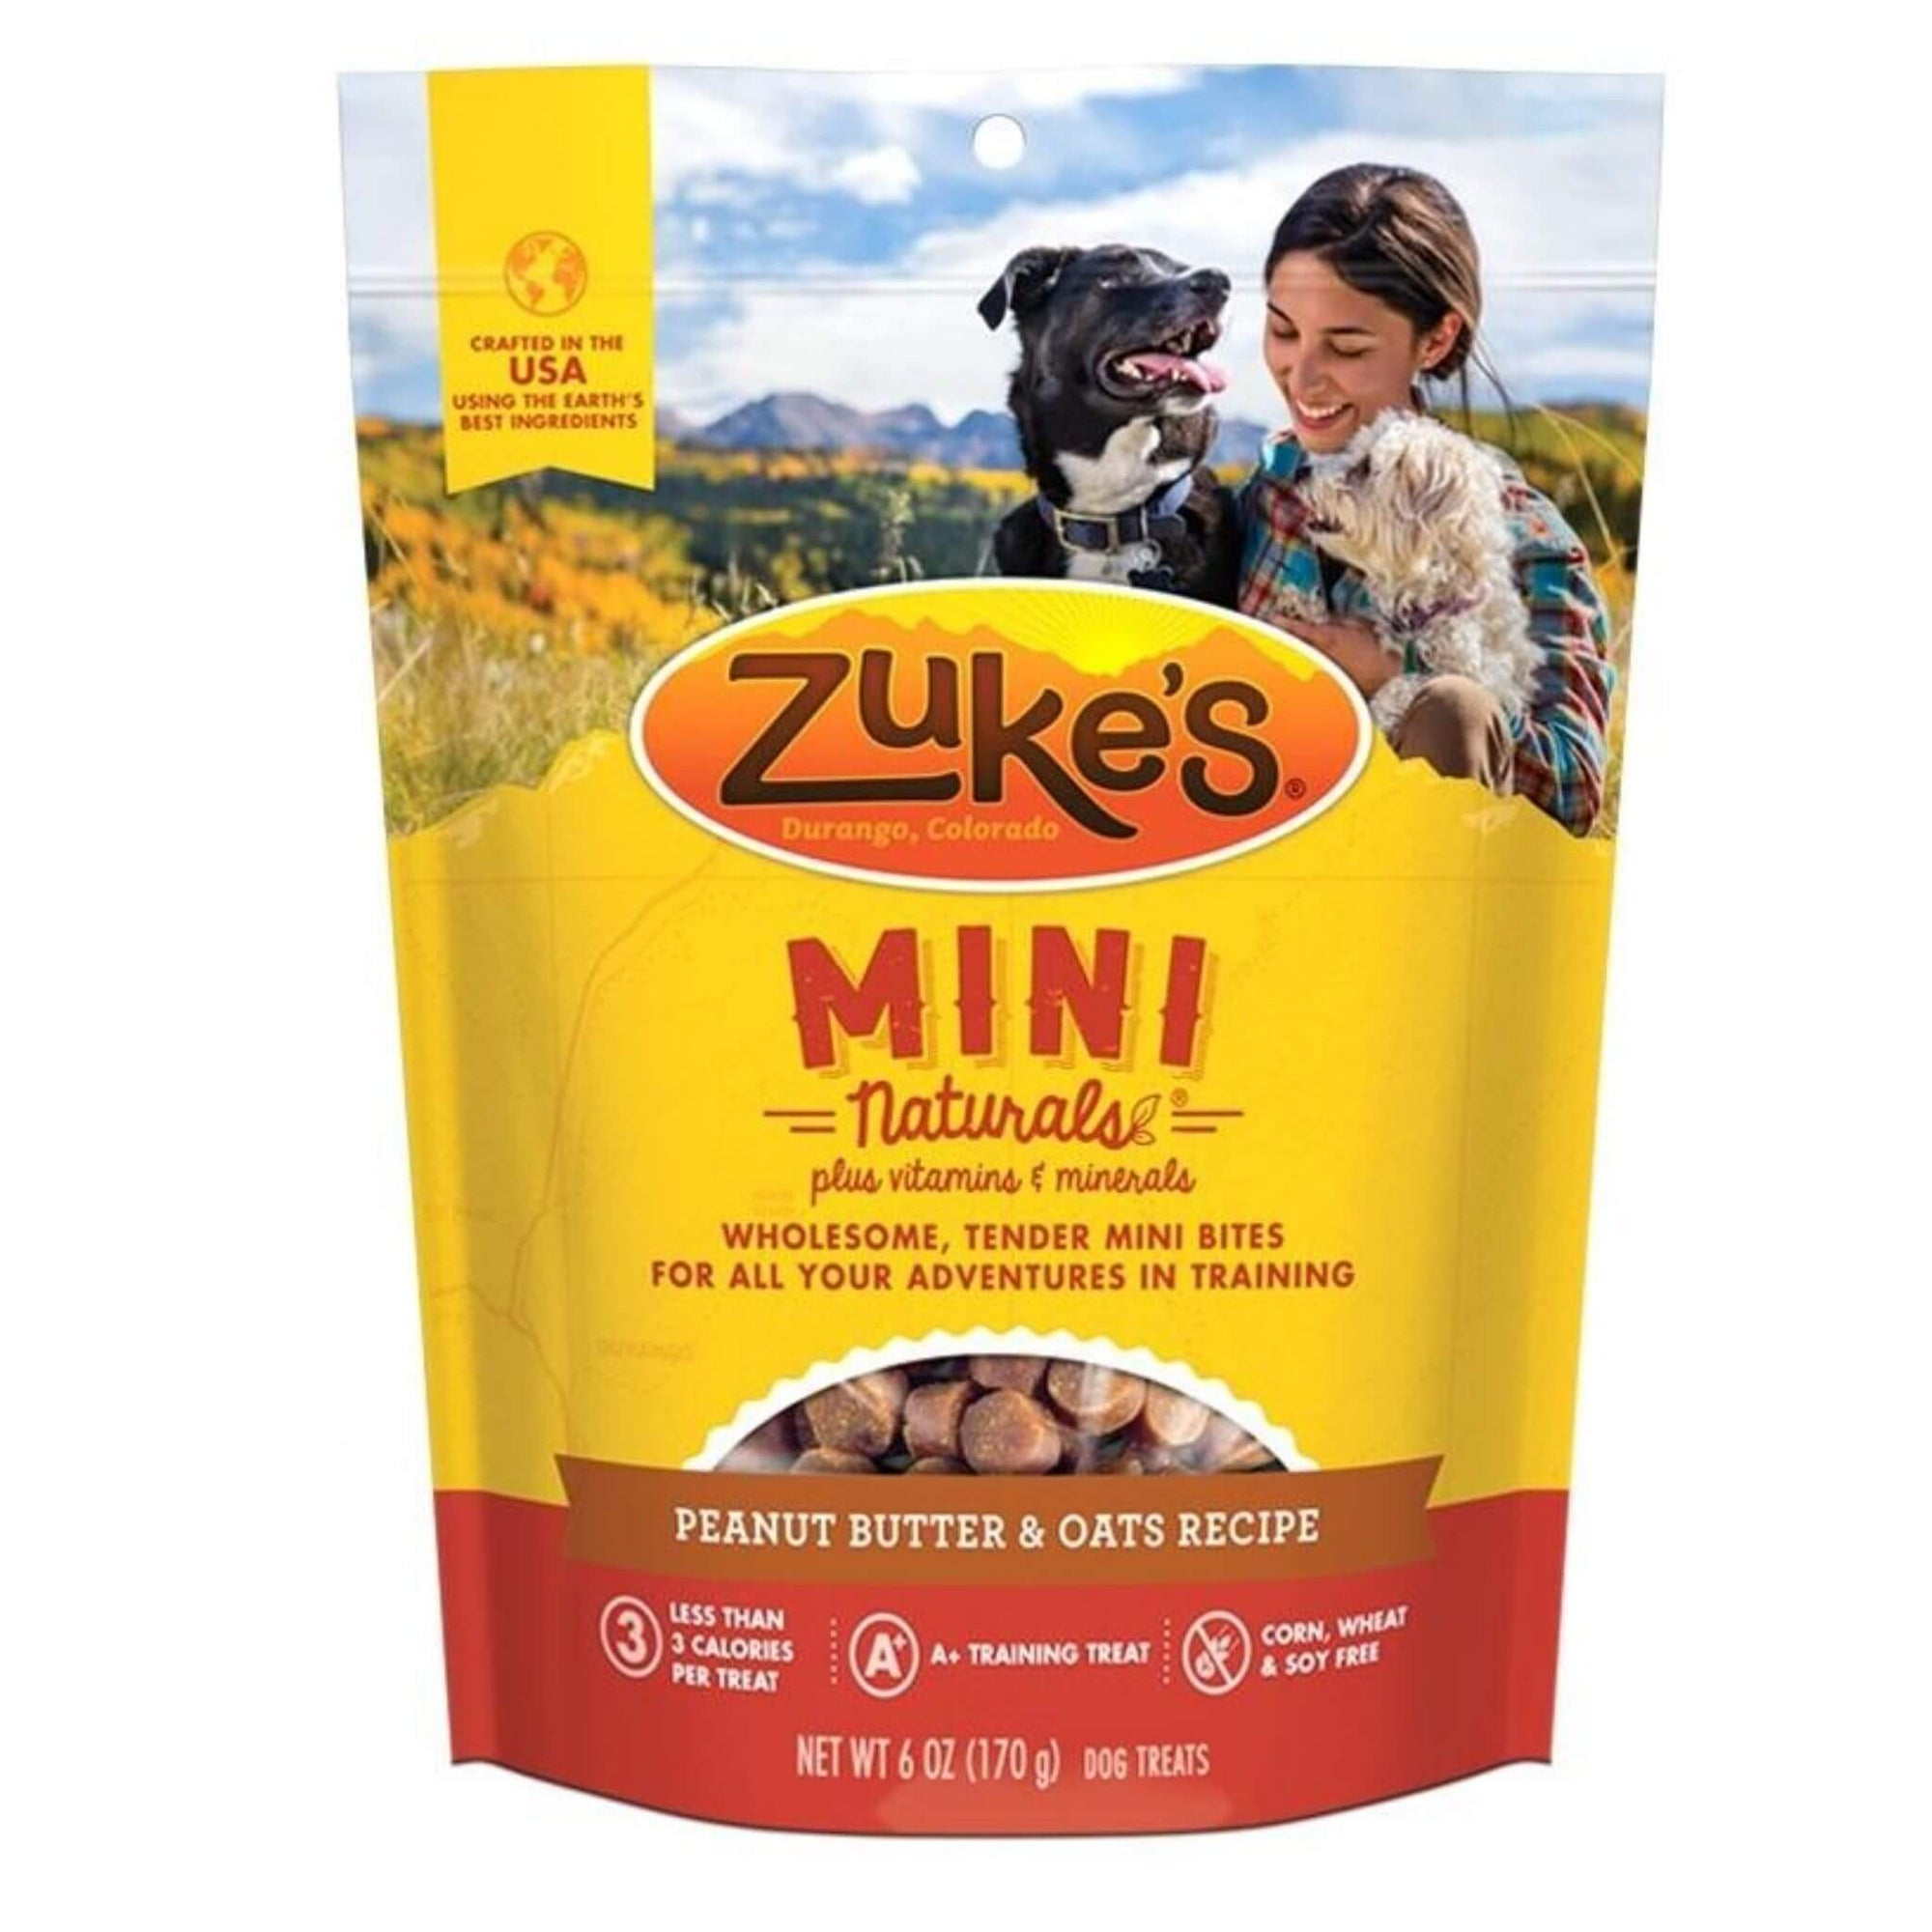 Zuke's Mini Naturals Dog Treats - Peanut Butter & Oats Recipe